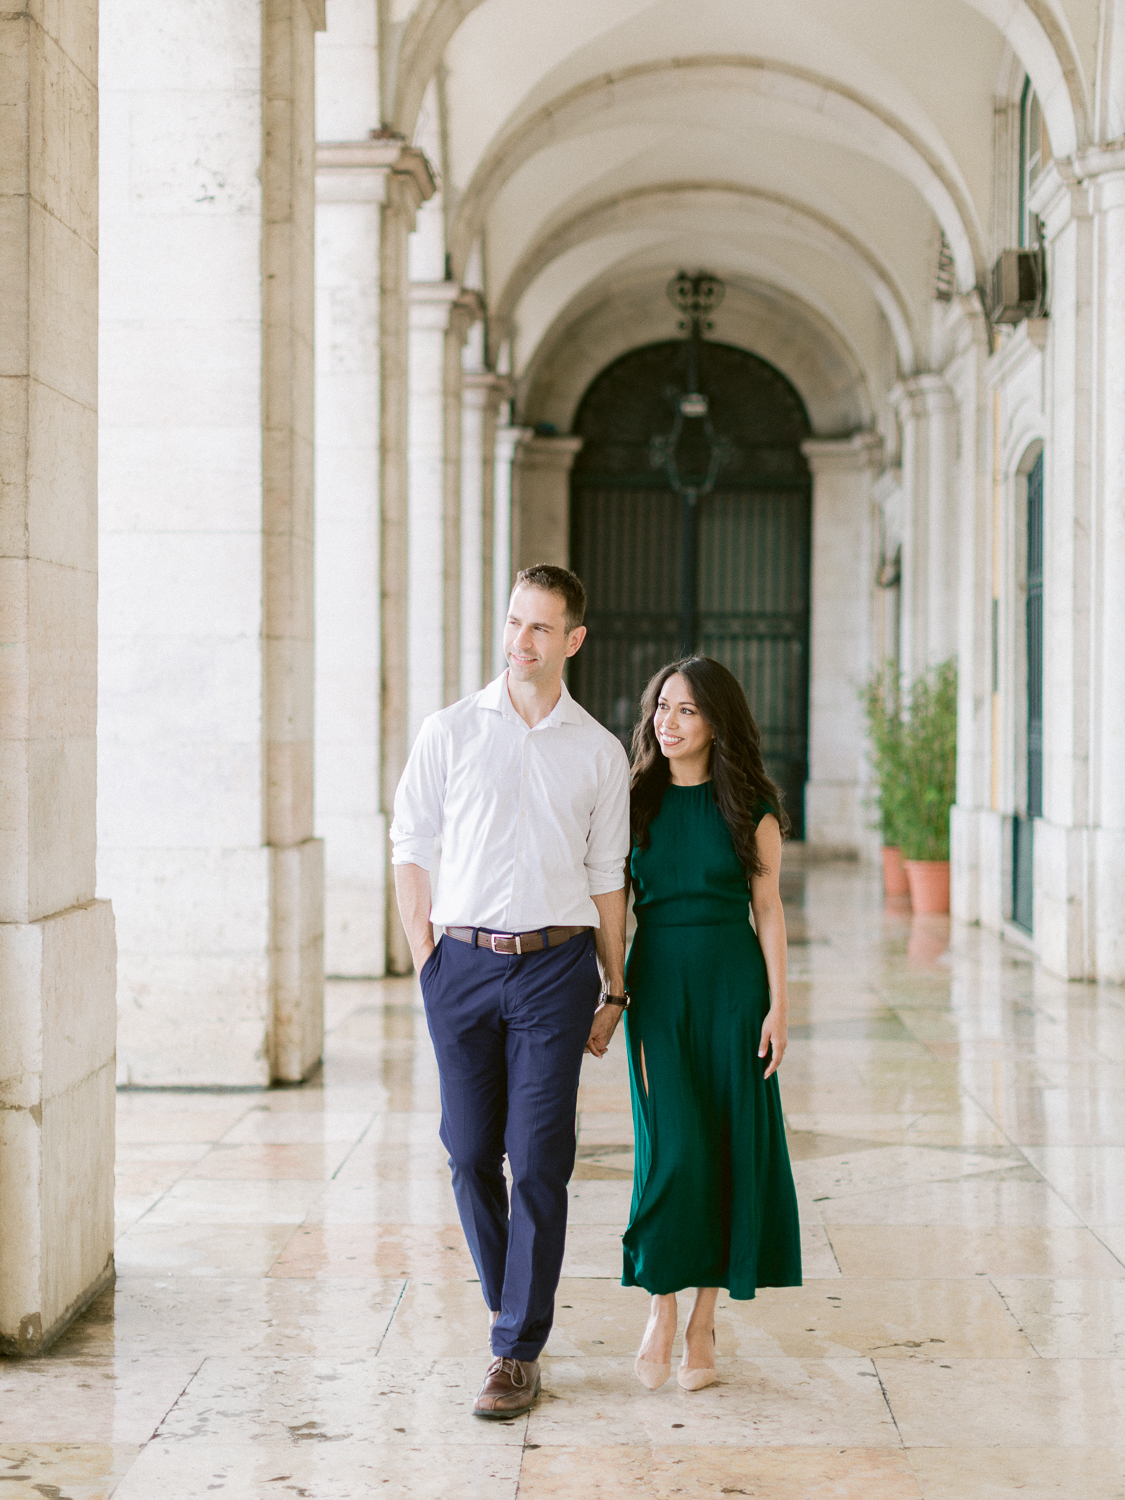 Portugal Wedding Photographer - Engagment in Lisbon